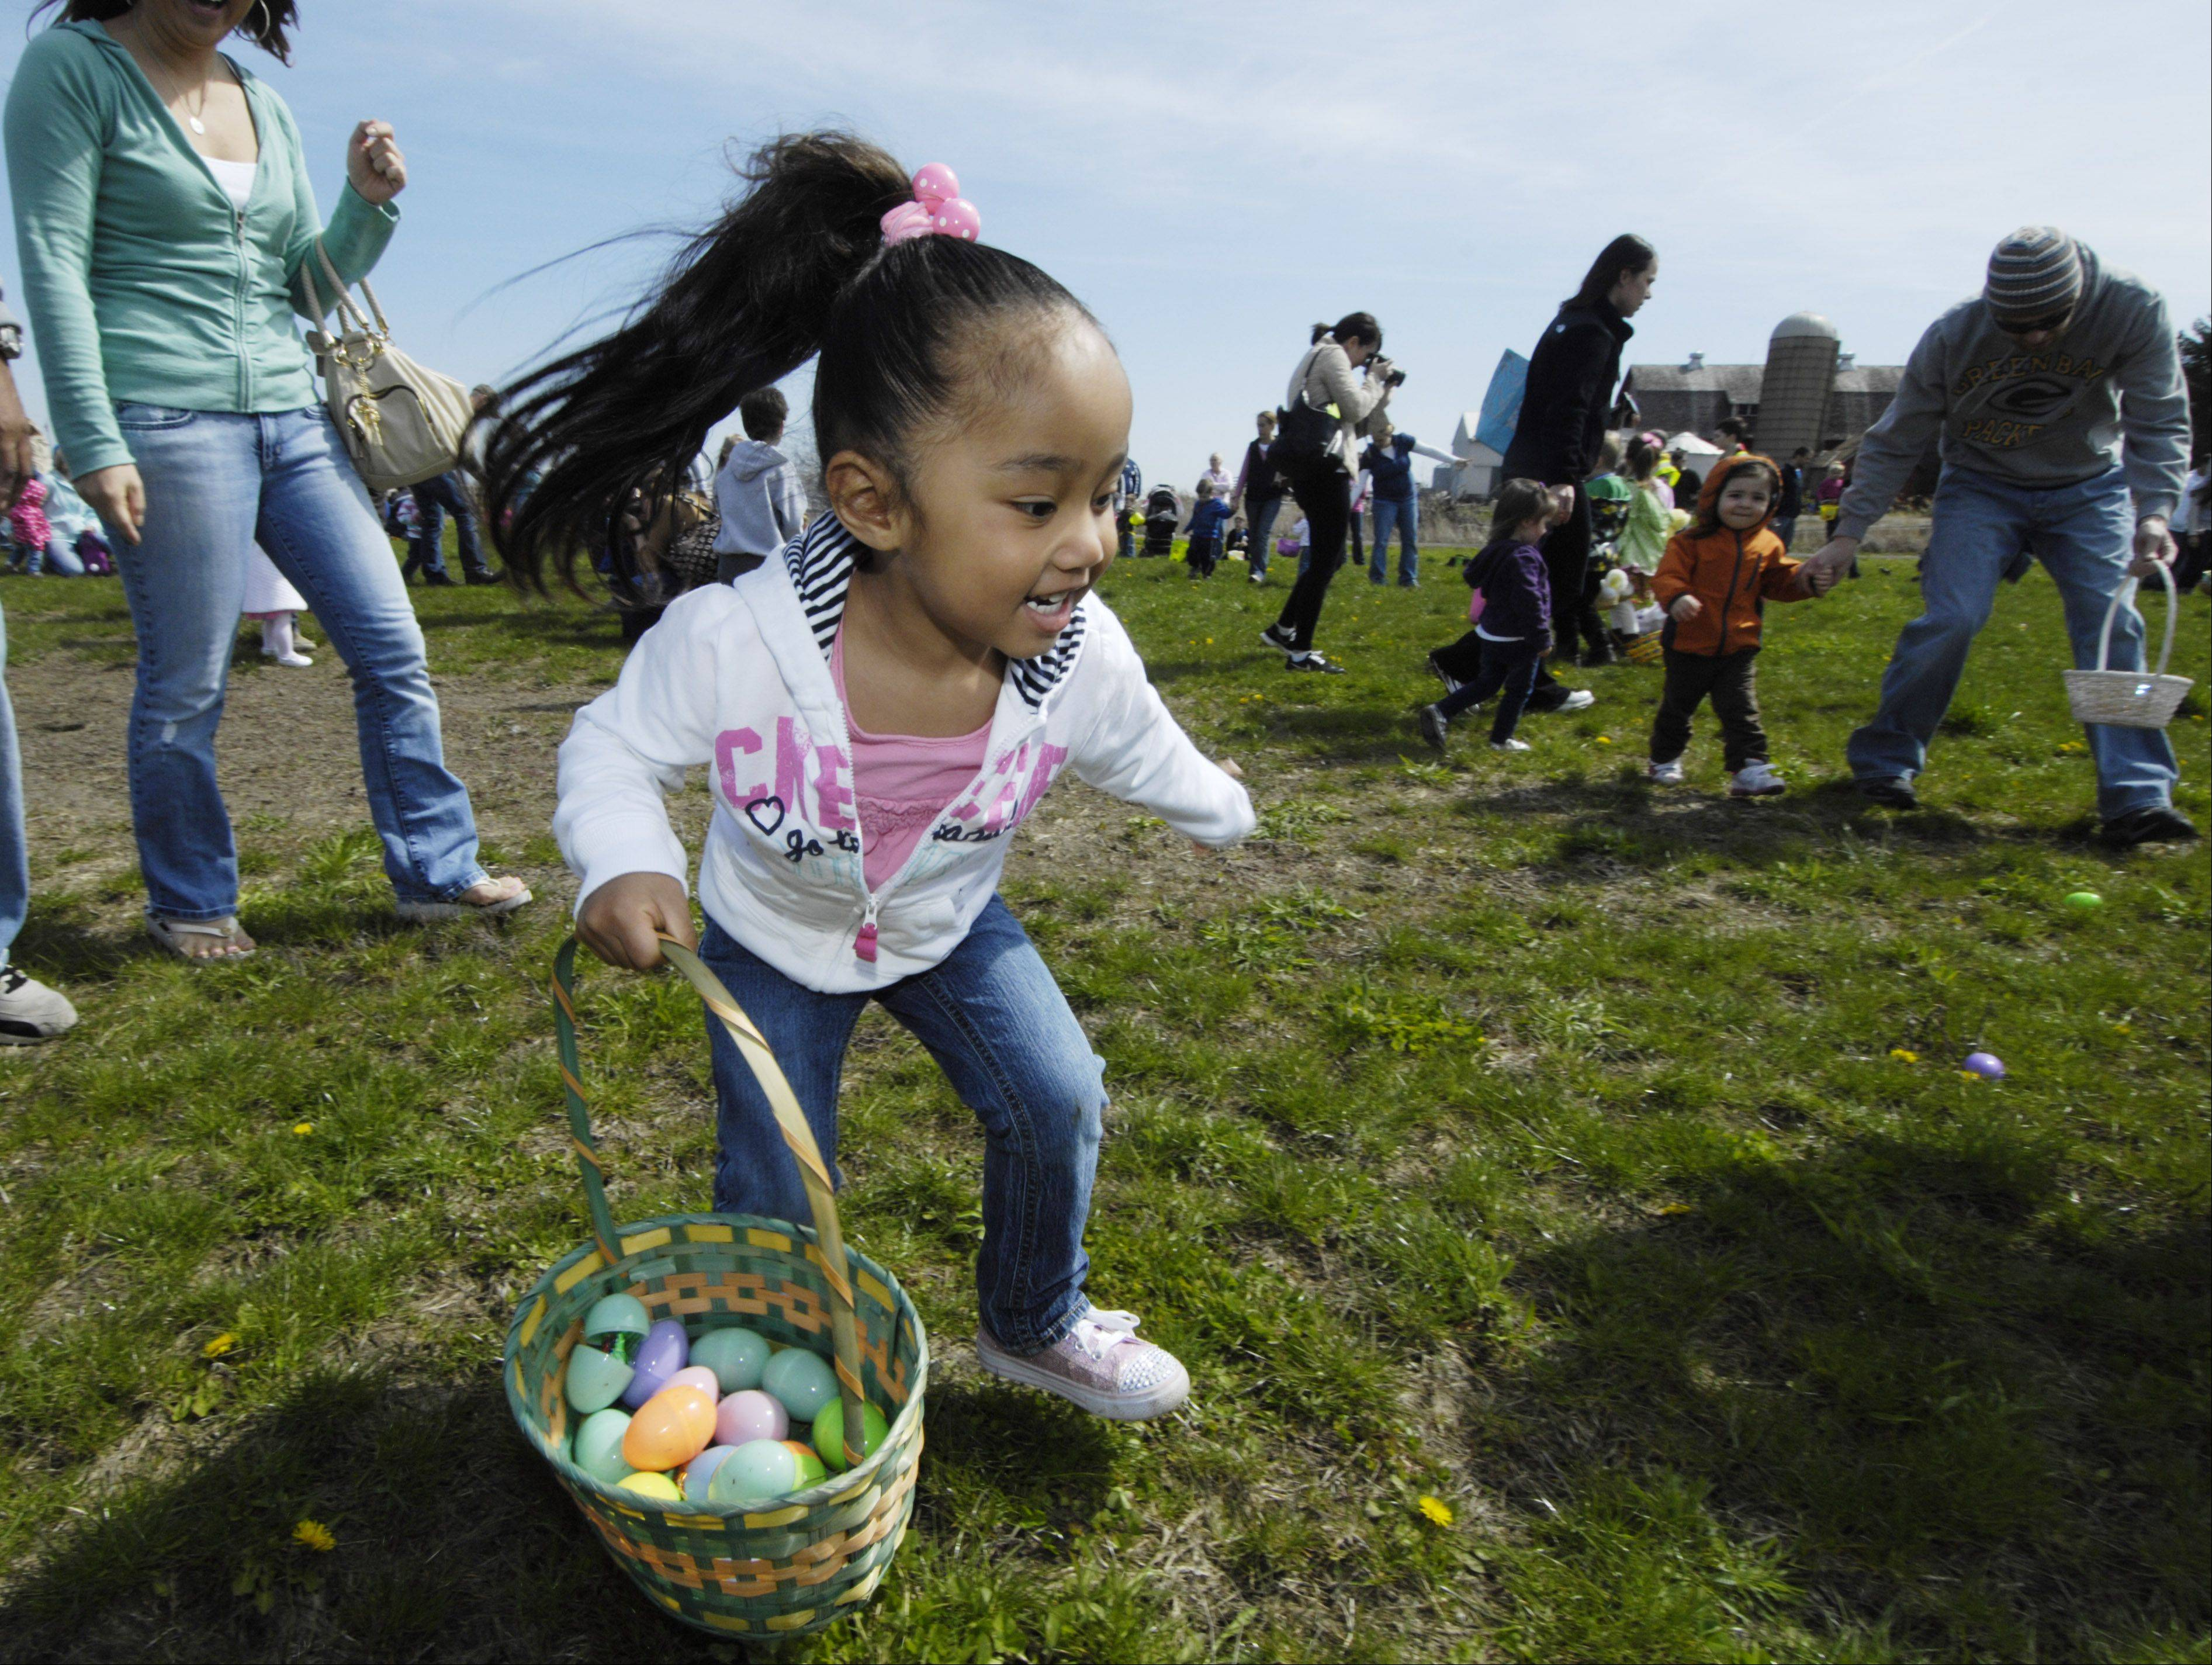 Aika Elzey, 3, of Round Lake gathers eggs during Saturday's Easter egg hunt at the Lake County Fairgrounds in Grayslake.